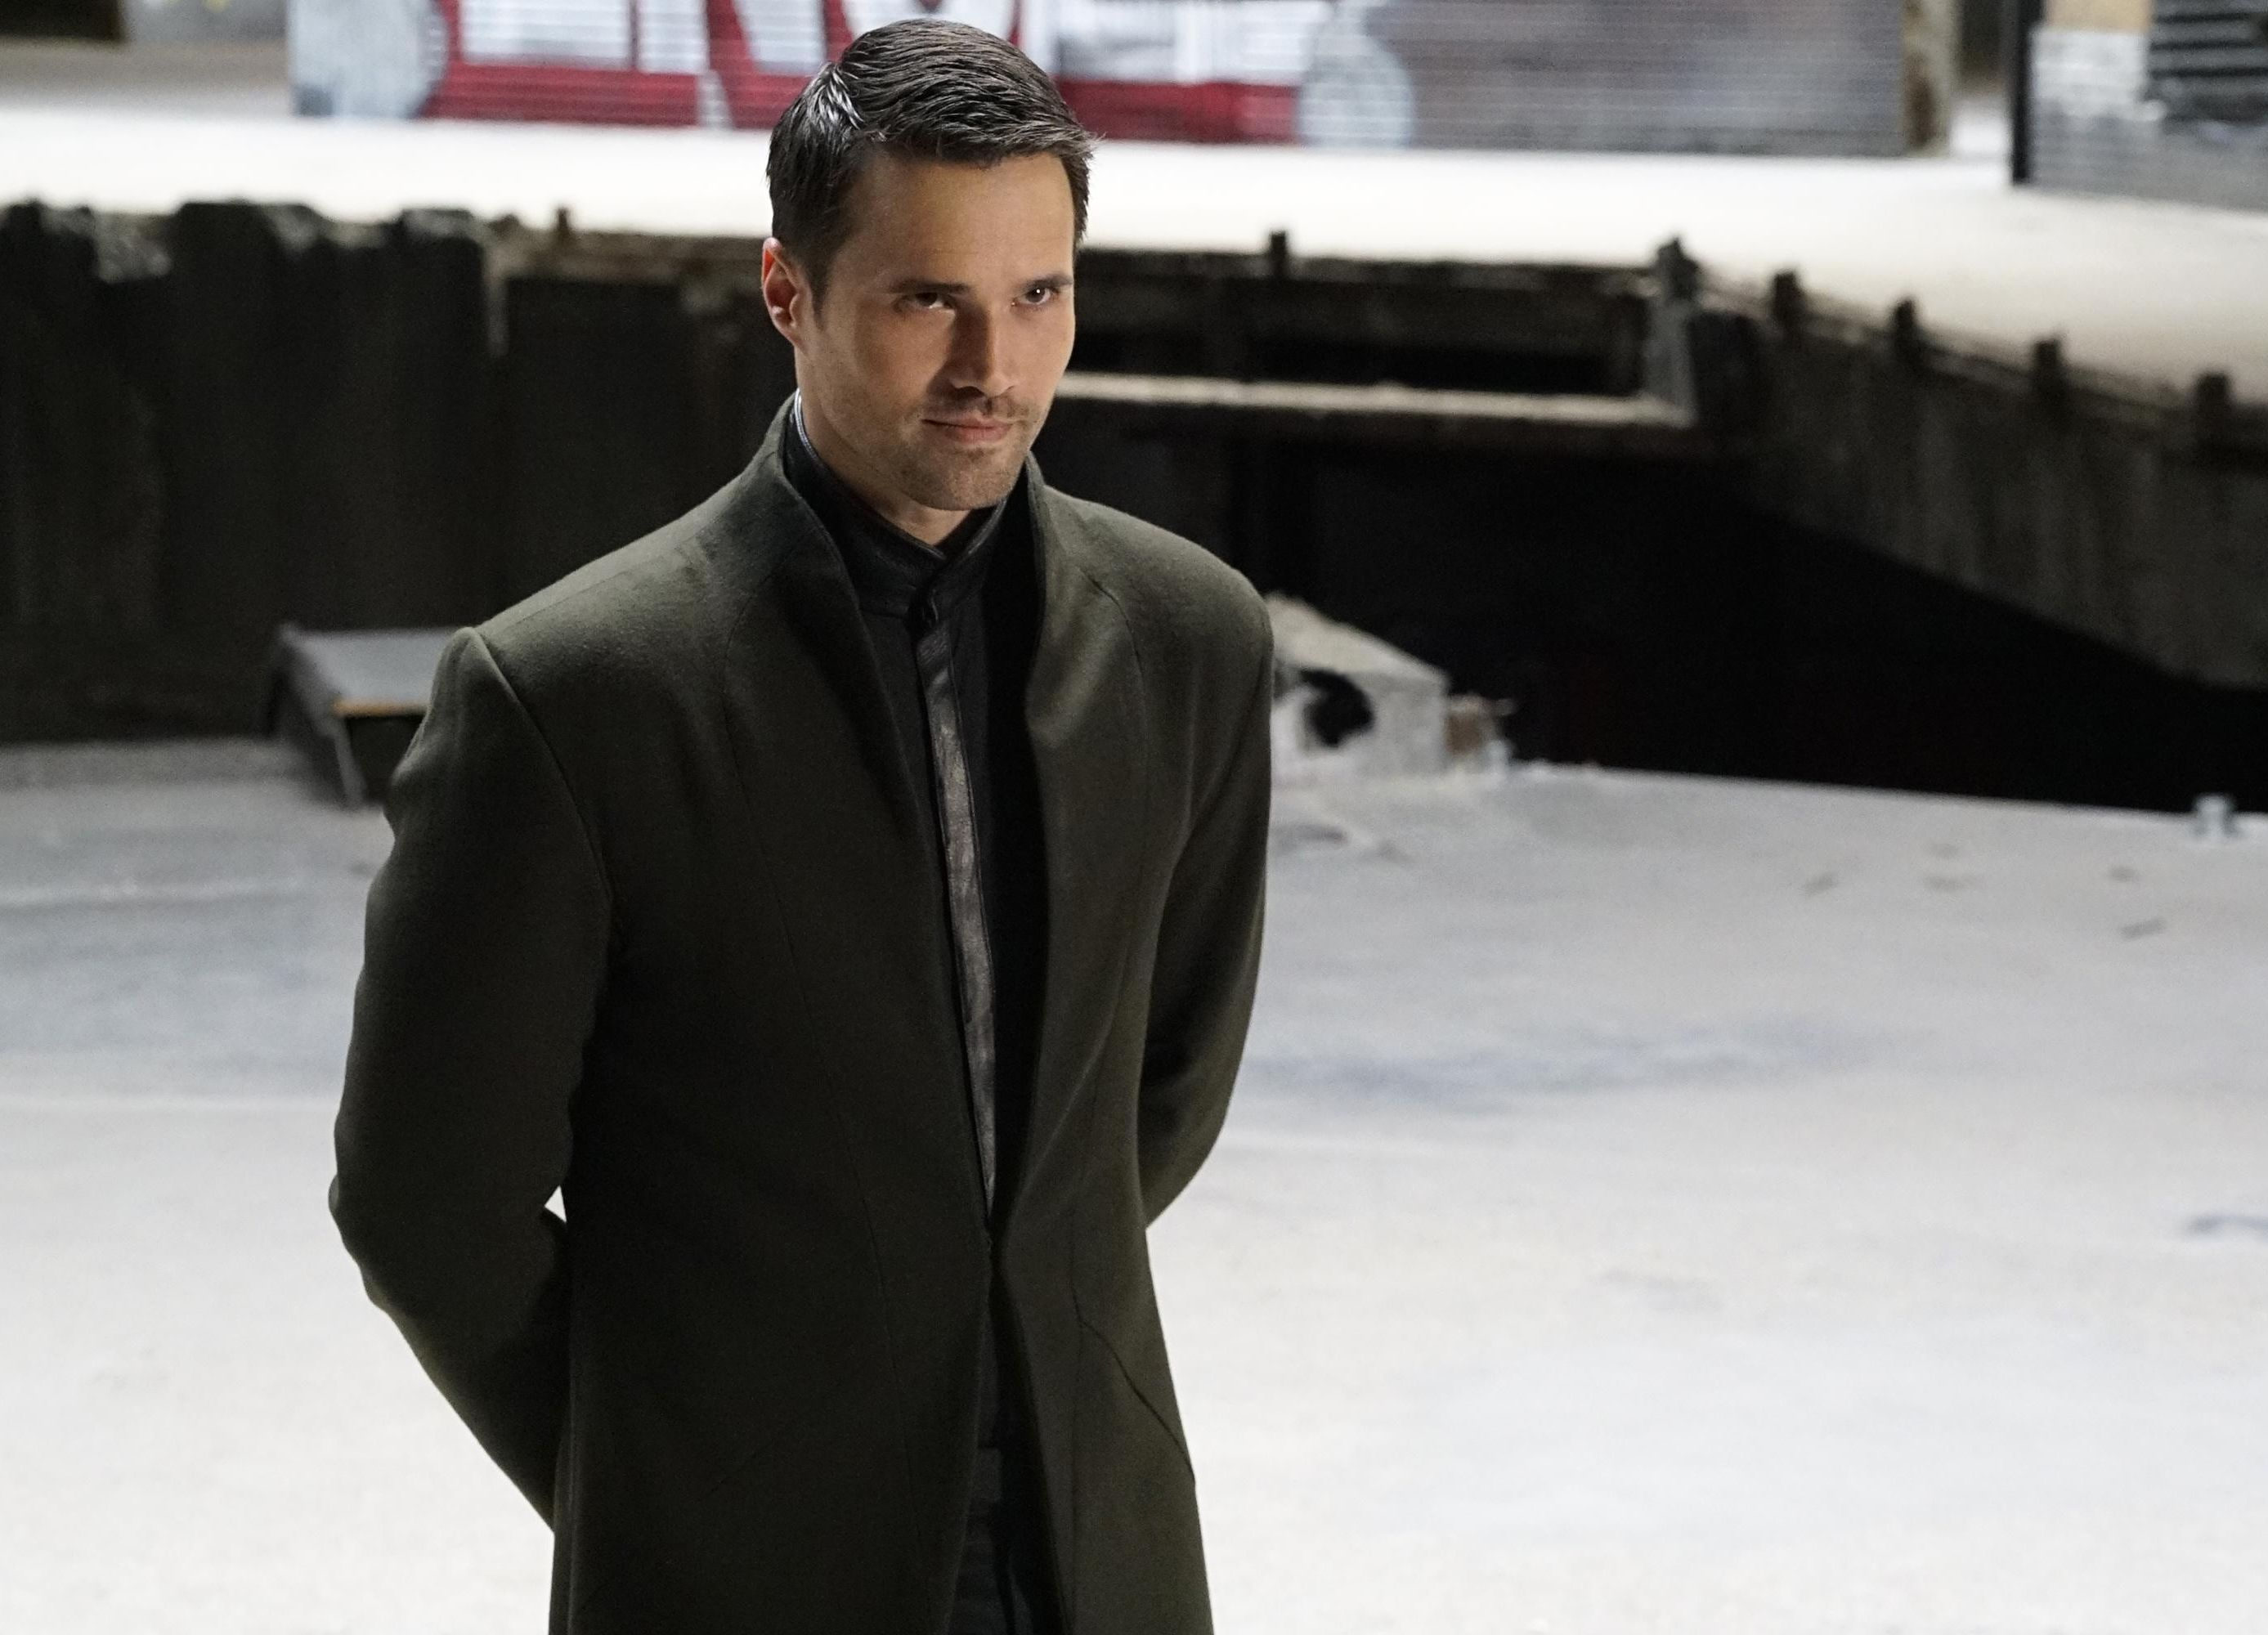 Agents of SHIELD - Episode 3.20 - Emancipation Hive